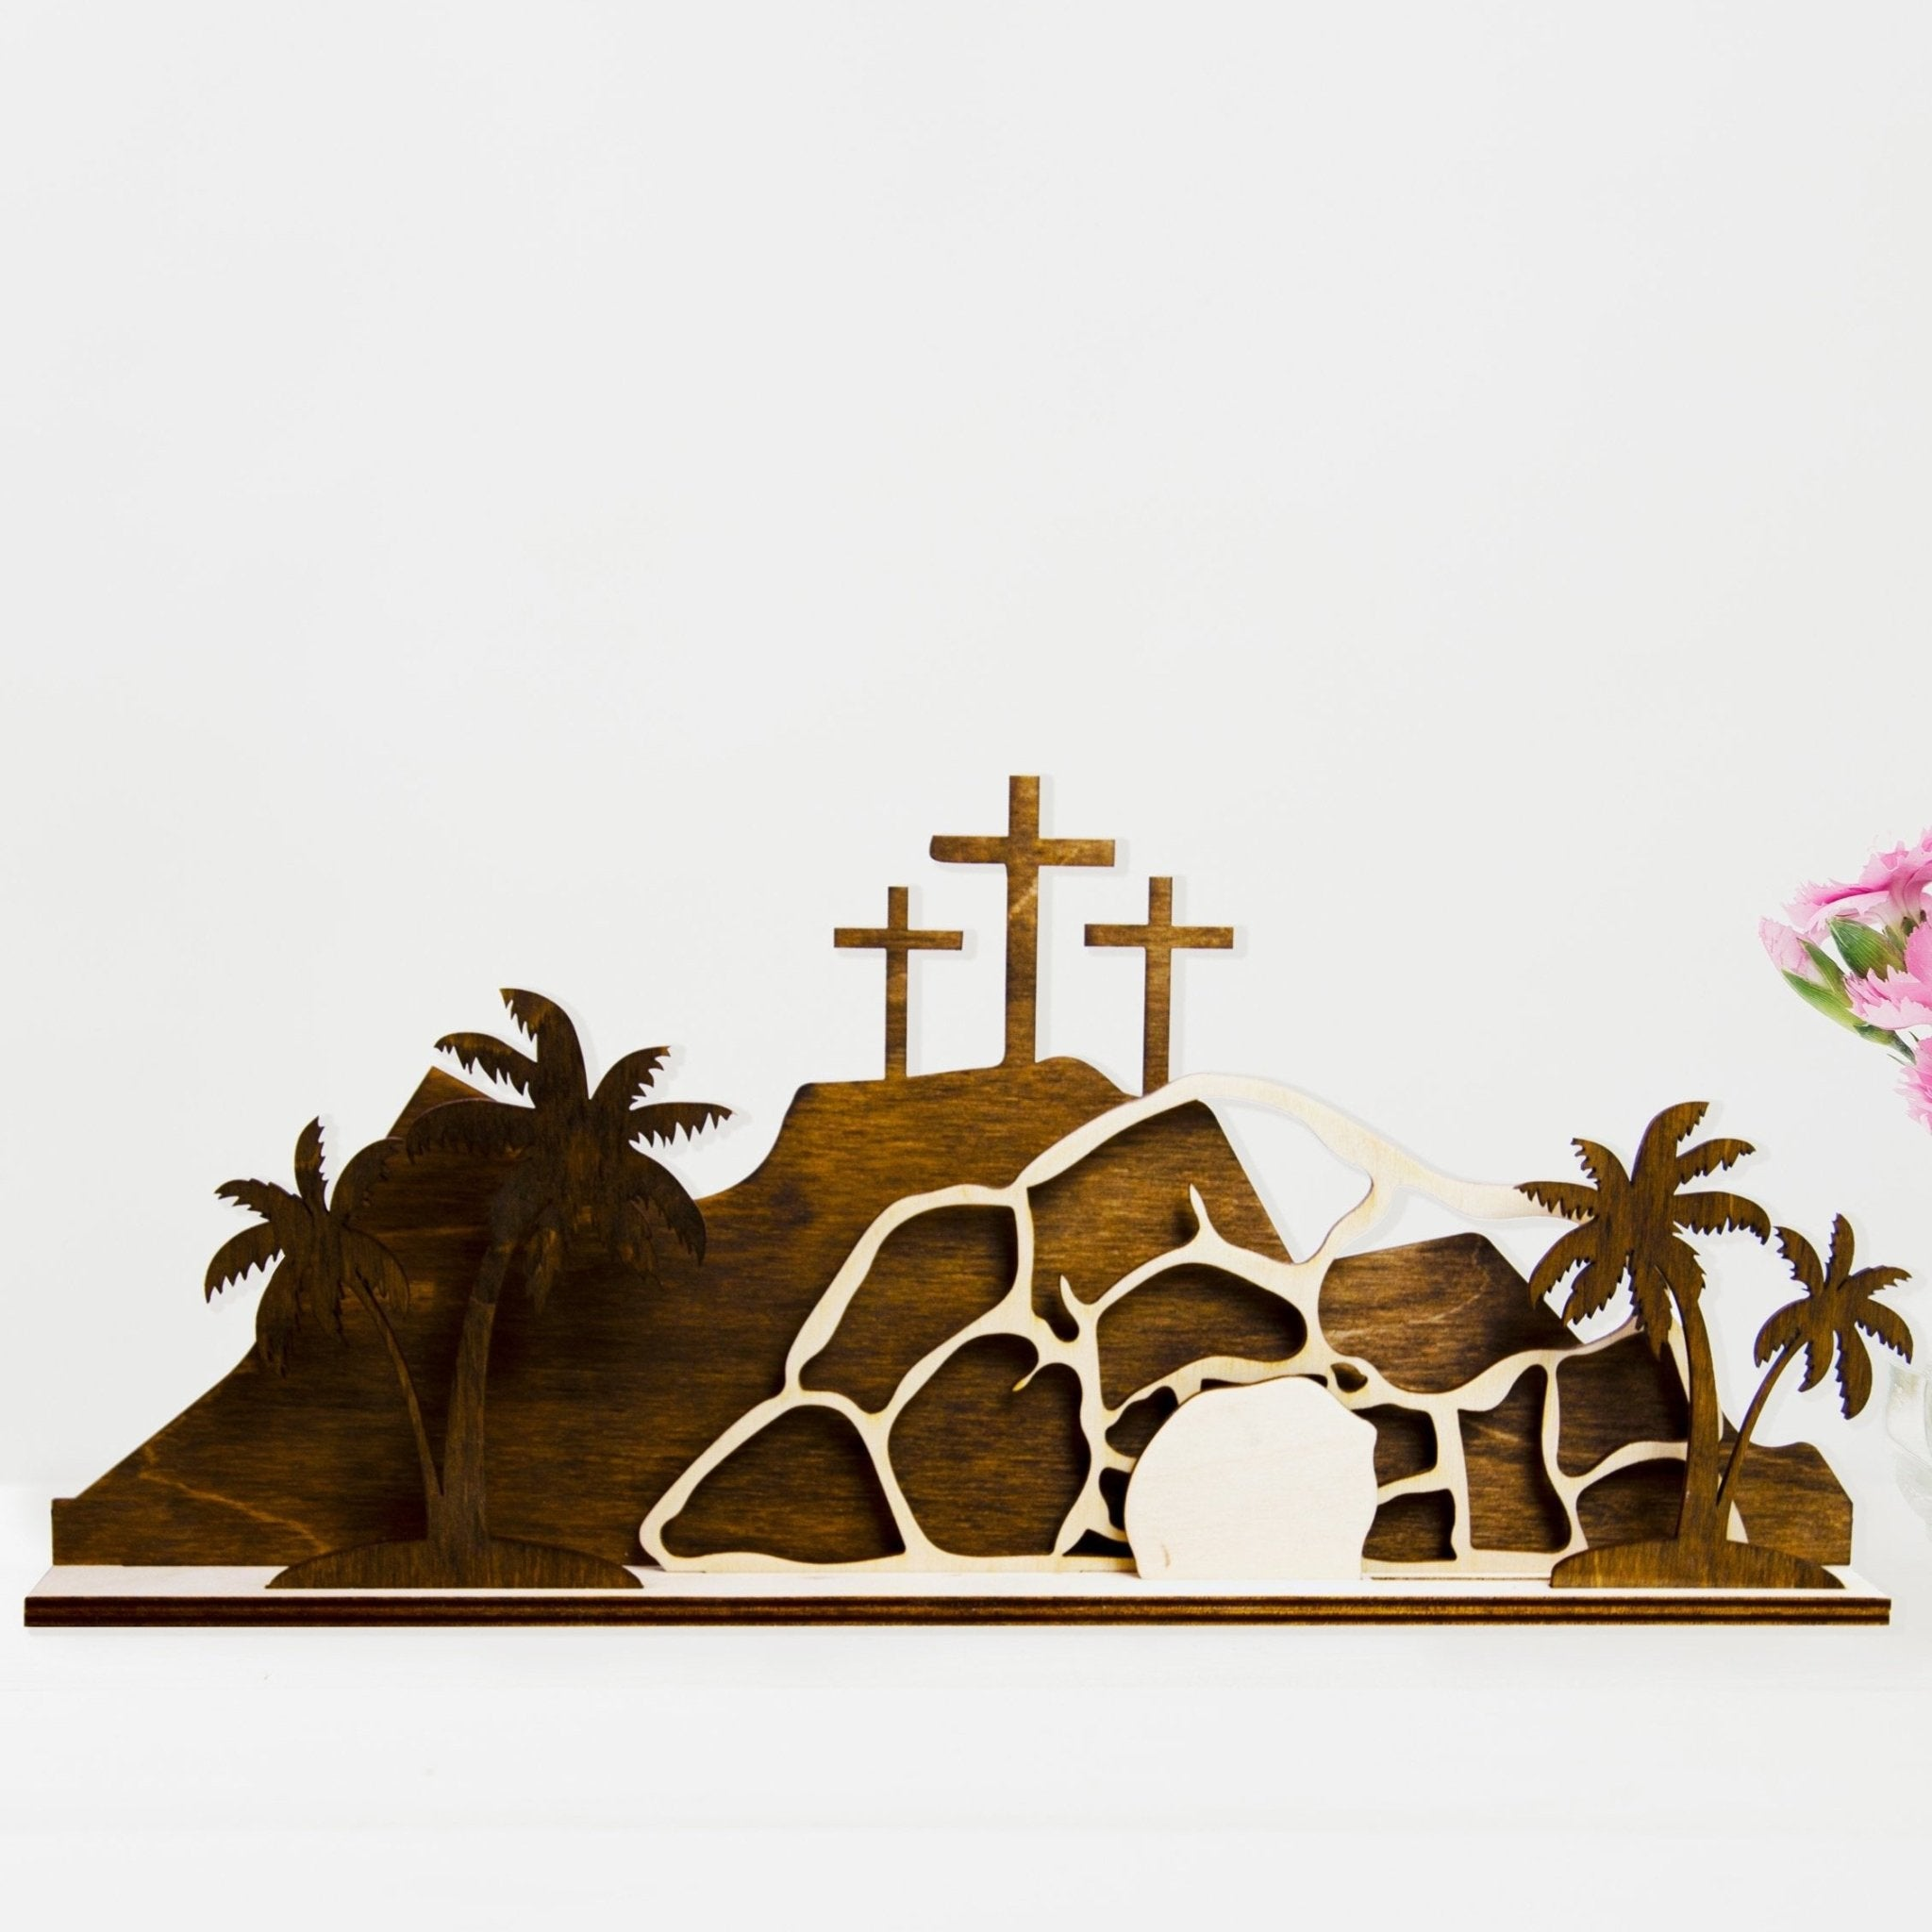 Wooden freestanding Easter scene with moveable stone